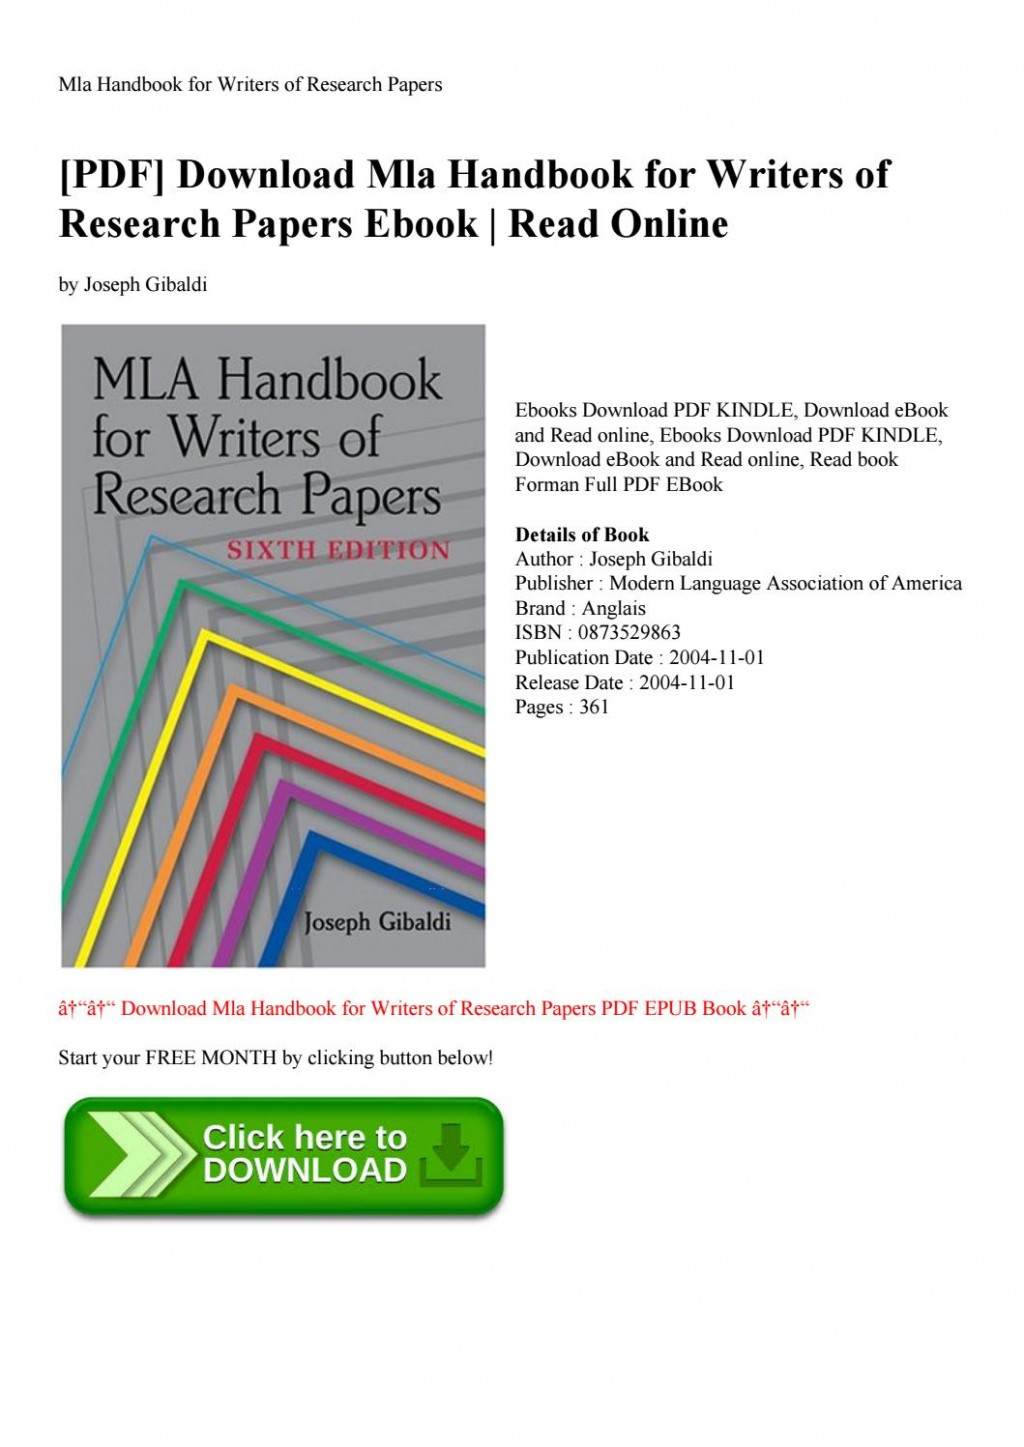 002 Mla Handbook For Writing Research Papers Pdf Paper Page 1 Beautiful Writers Of 7th Edition Free 6th 2009 Large